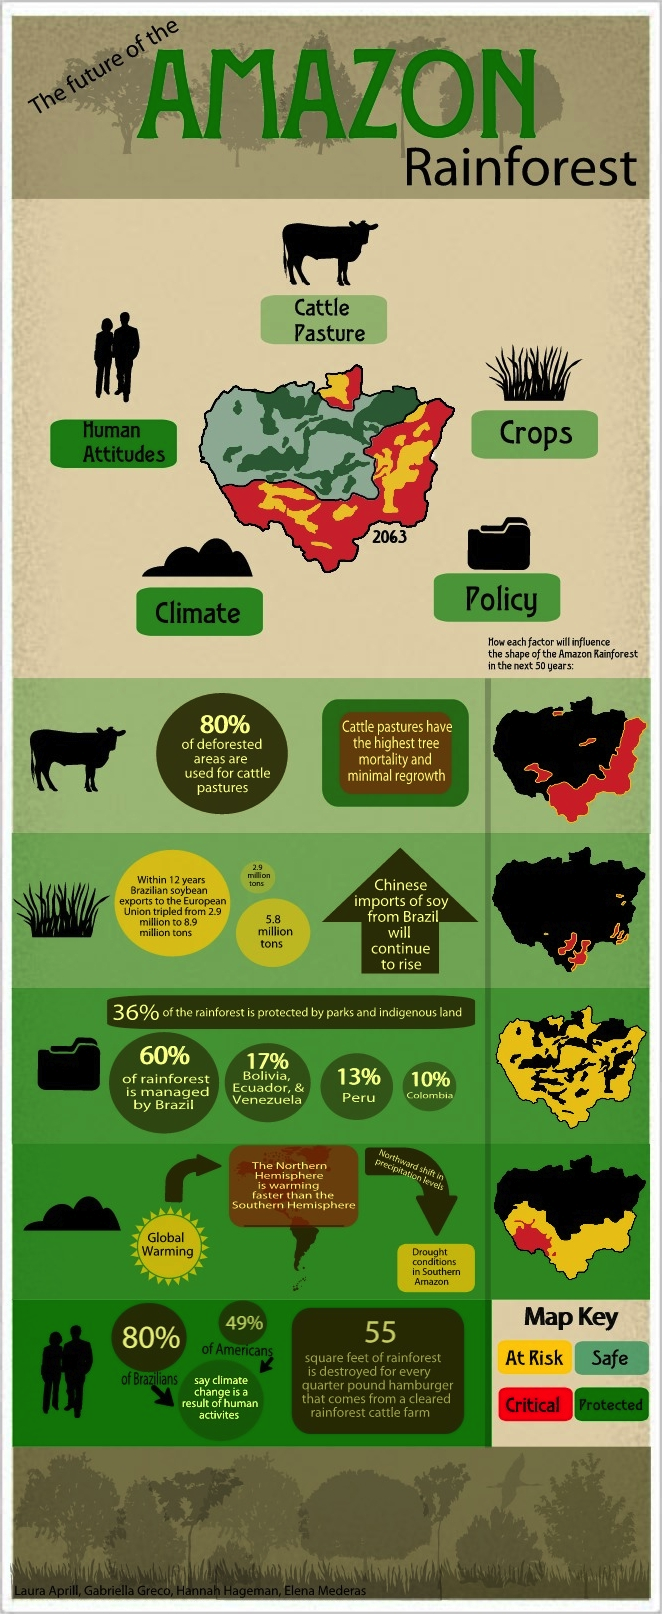 The Future of the Amazon Rainforest - an infographic by Laura Aprill, Gabby Greco, Hannah Hageman, and Elena Mederas